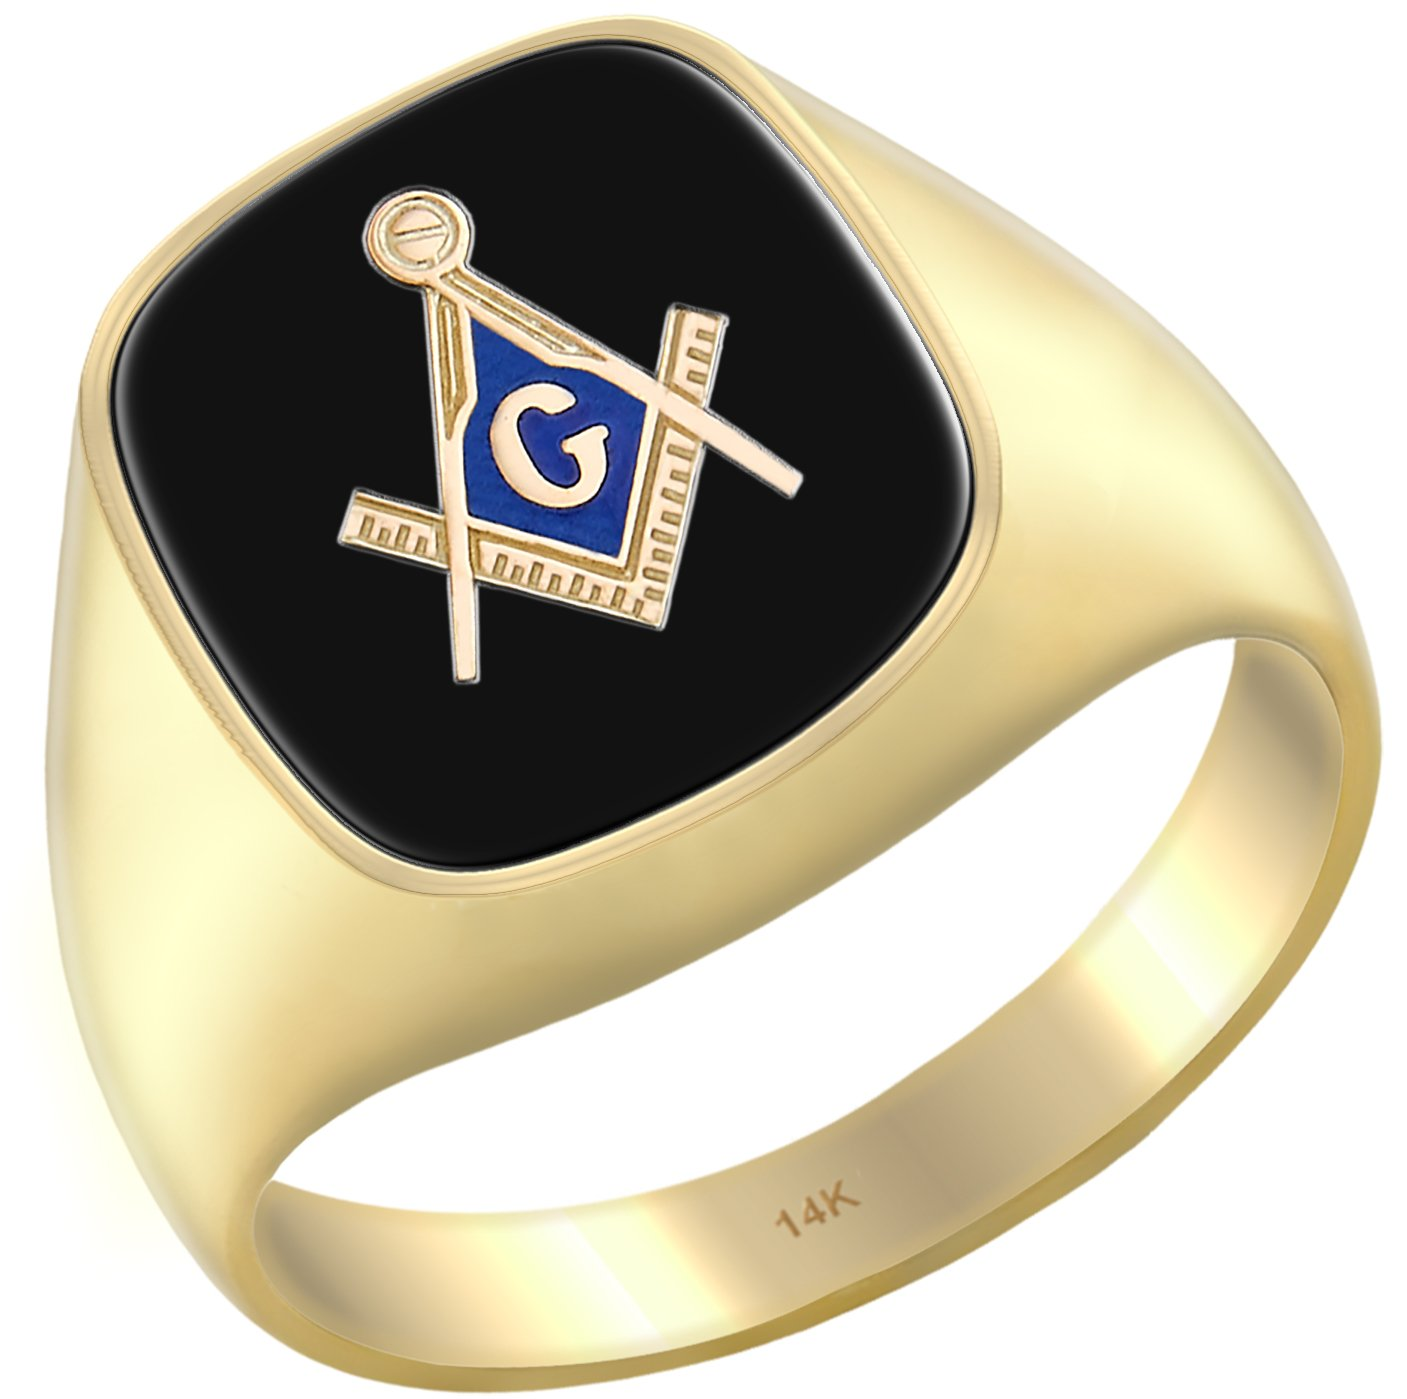 US Jewels And Gems Men's 14k Yellow Gold Blue Lodge Simulated Black Onyx Solid Back Freemason Ring, Size 9